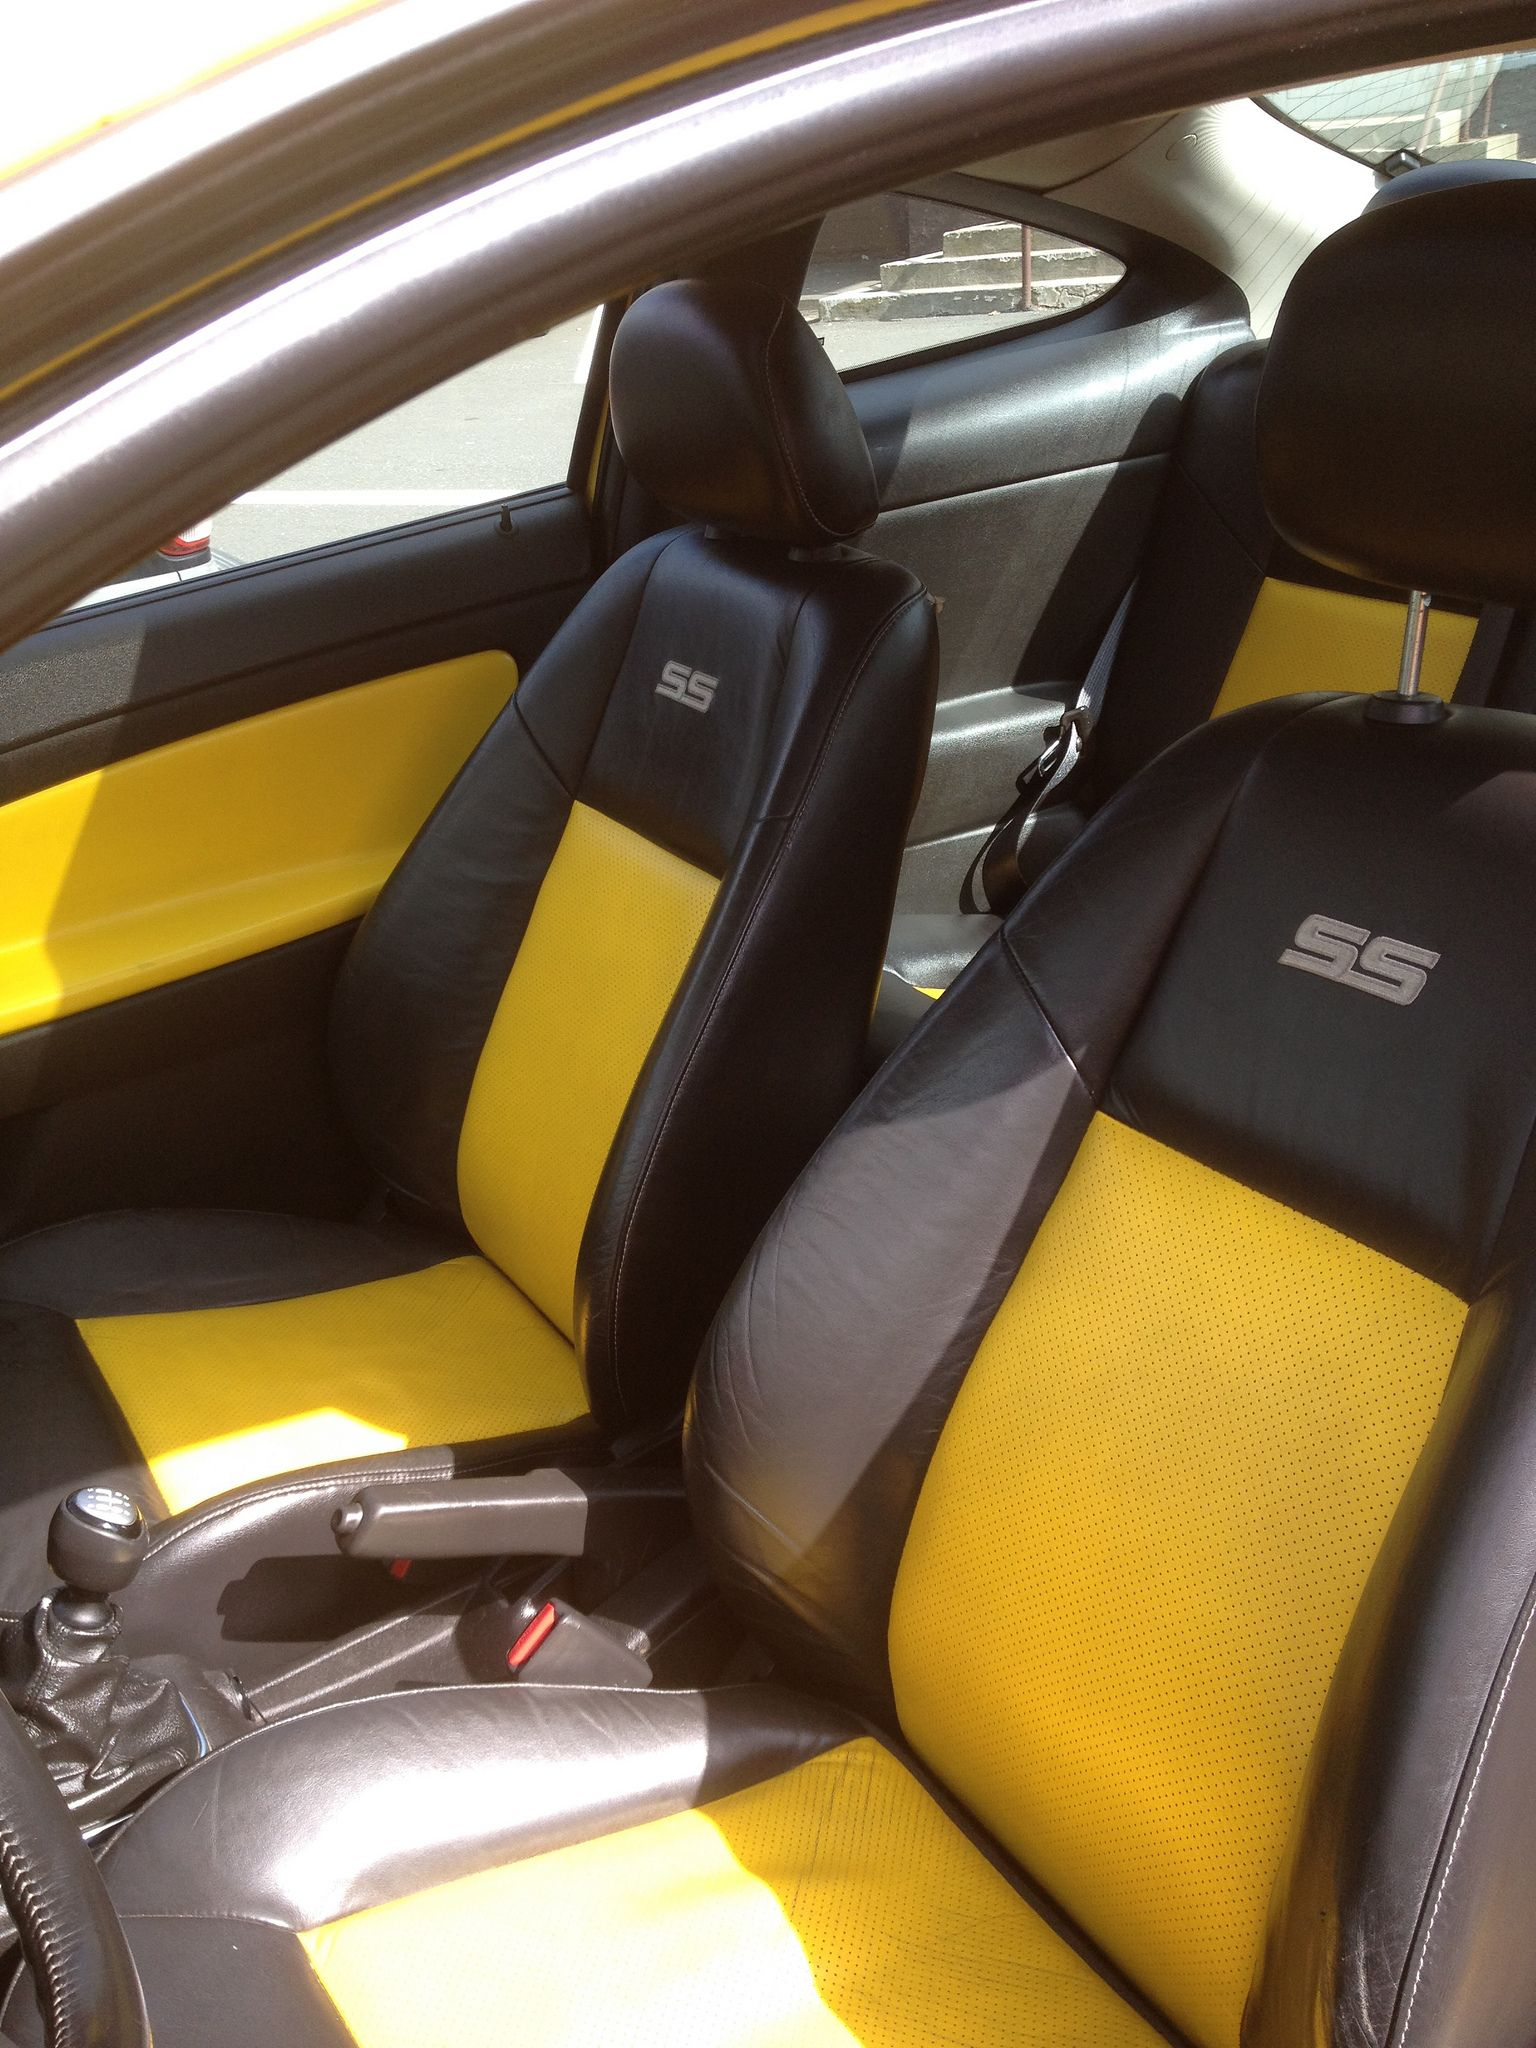 2005 Rally Yellow Chevy Cobalt SS supercharged, yellow and black interior  Cobalt Ss Supercharged,